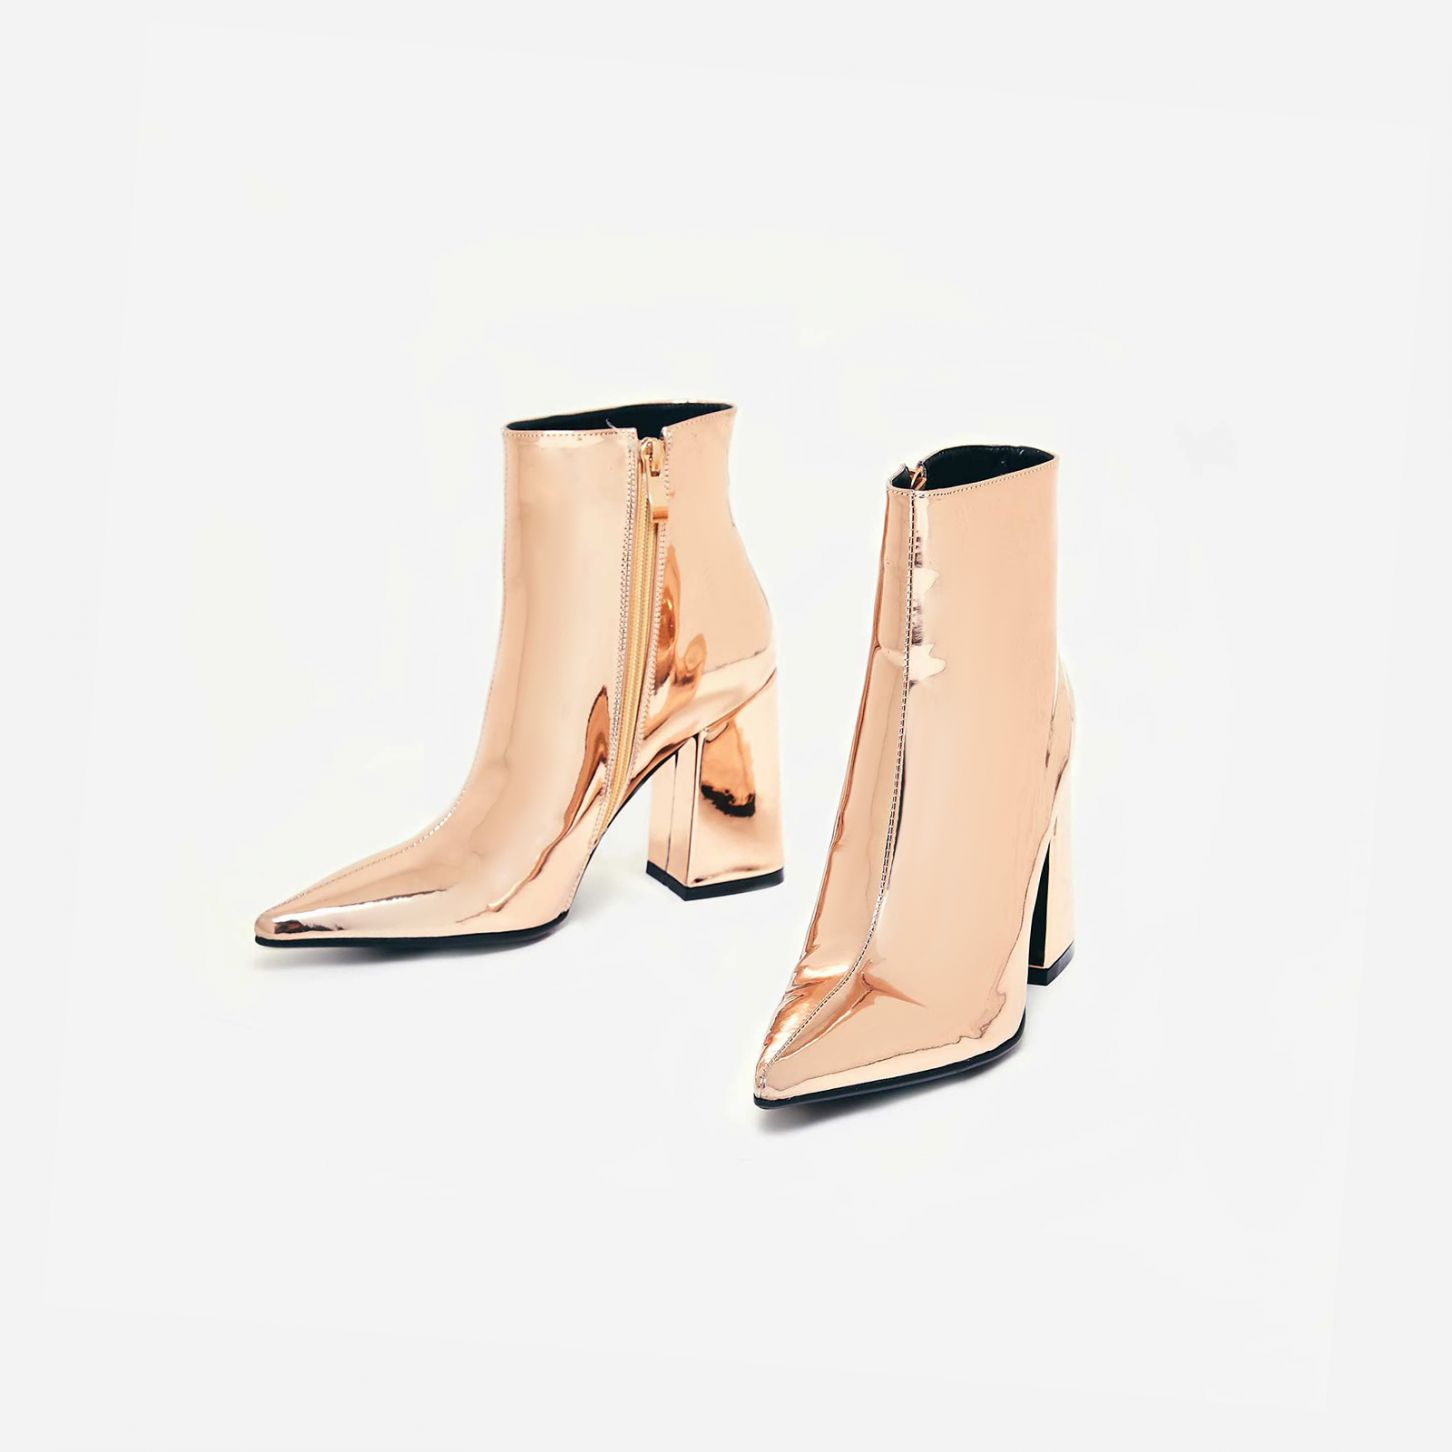 EGO ROSE GOLD BLOCK HEEL ANKLE BOOT